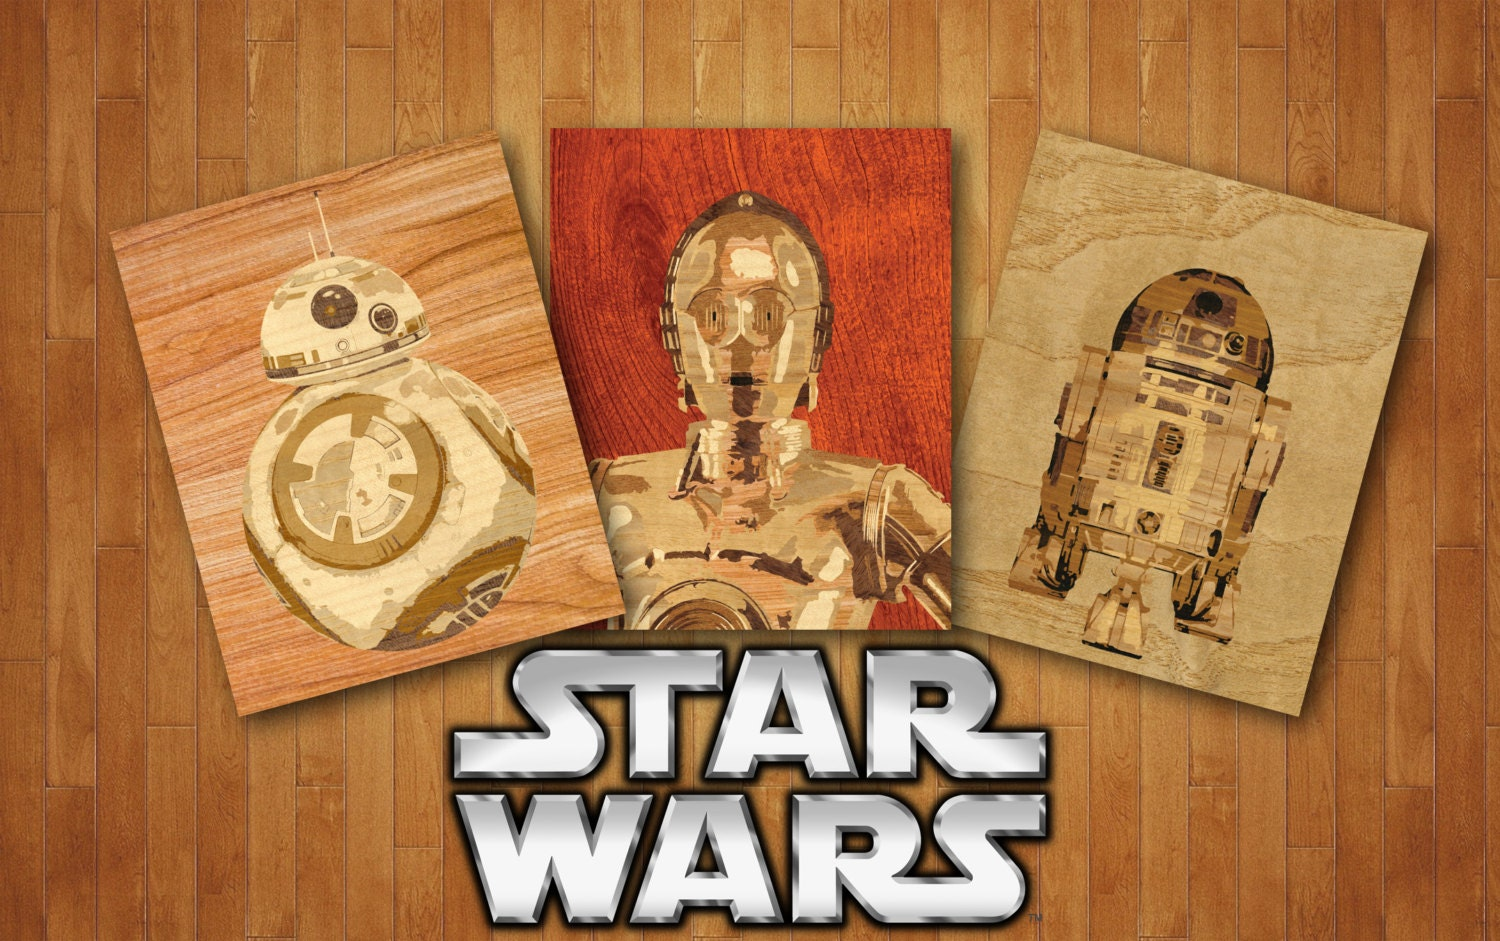 Star wars wooden robots home decor home art entry way print for Star wars home decorations